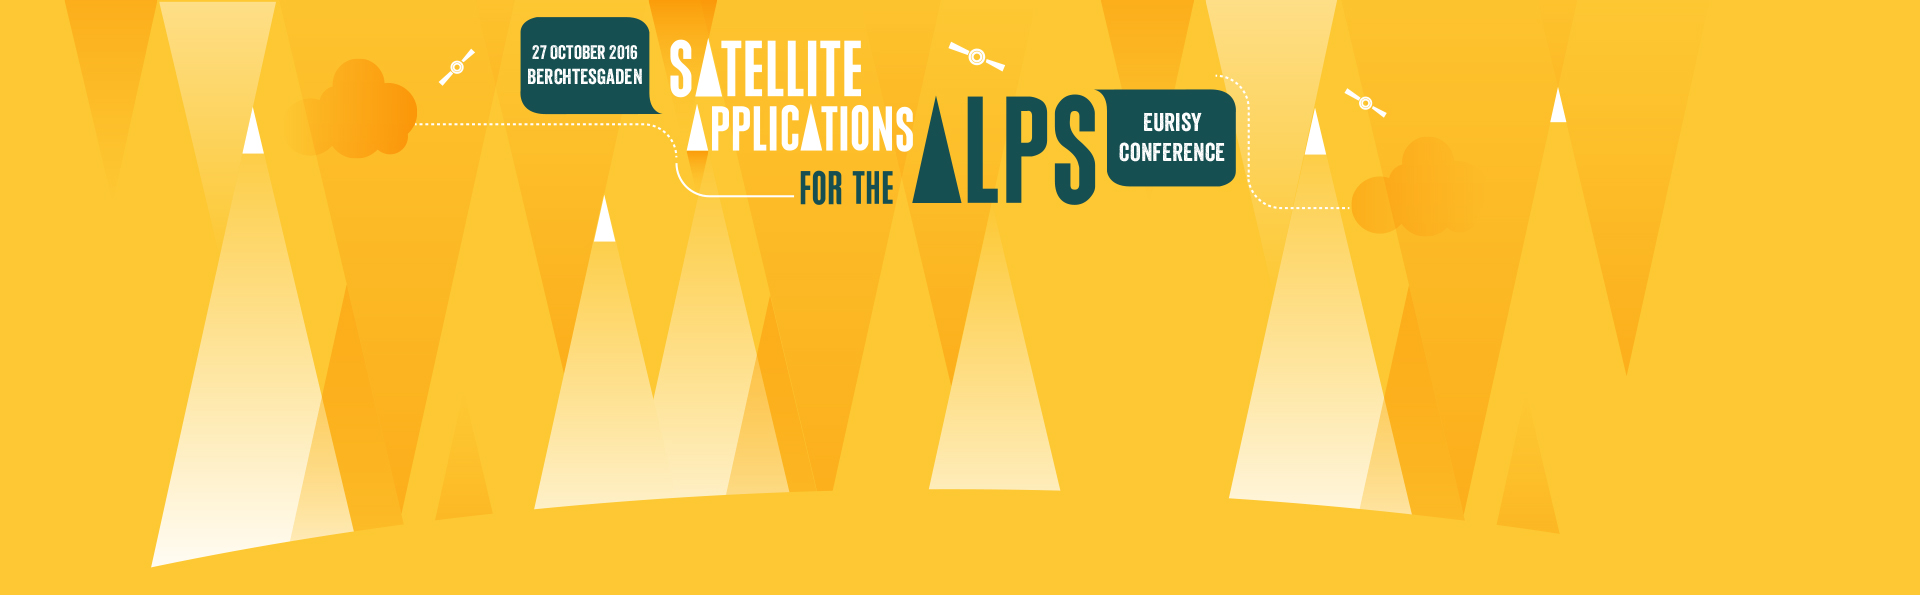 Satellite Applications for the Alps